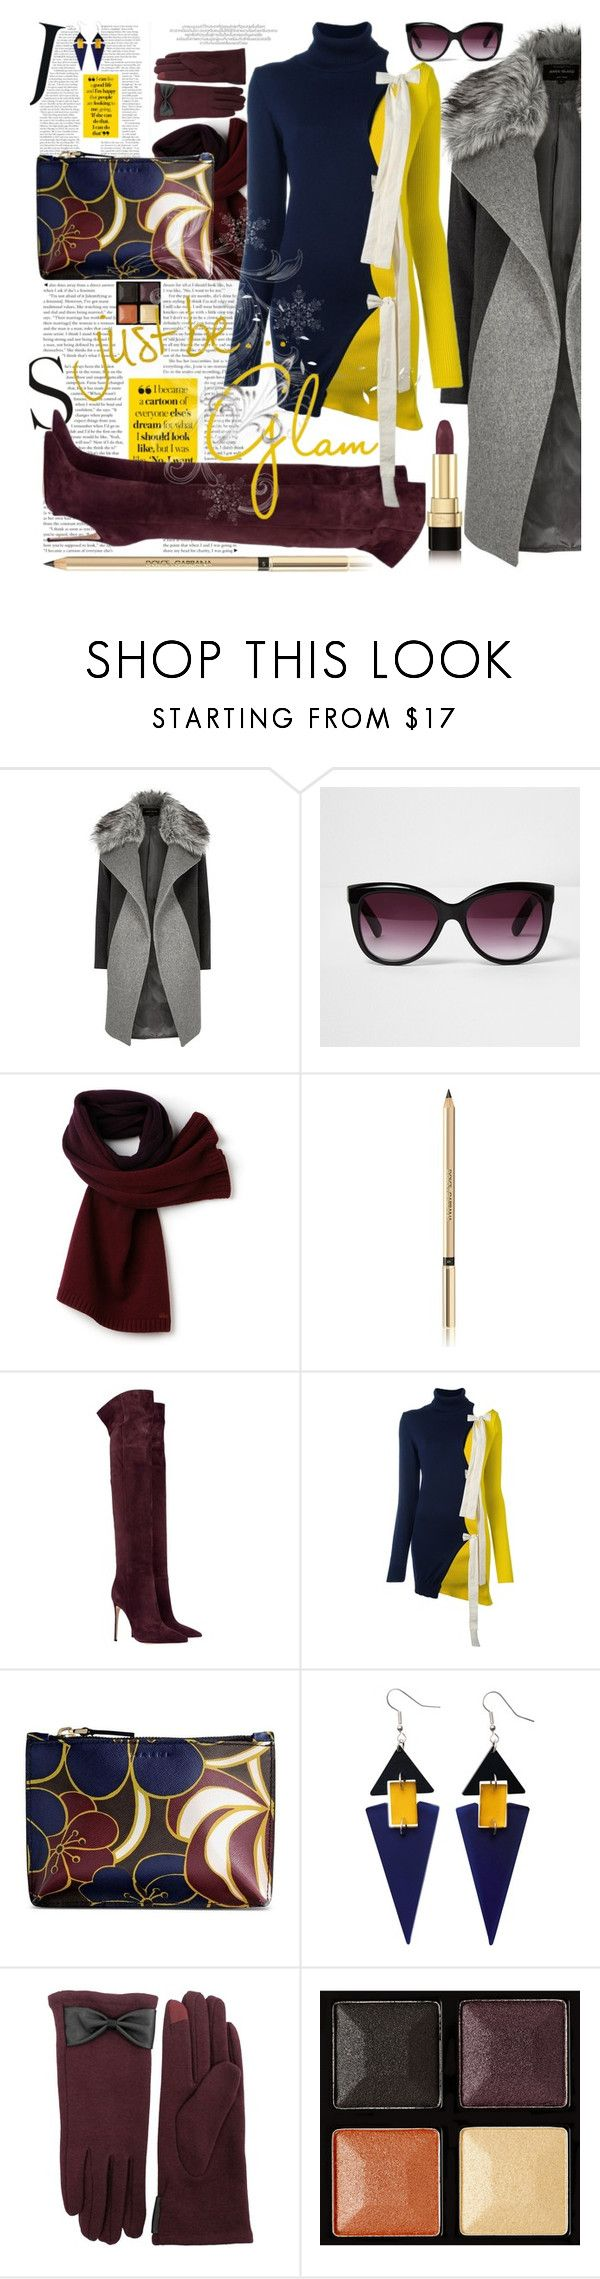 """Jacquemus Bow Detail Contrast Jumper"" by the-wardrobe-of-wishes ❤ liked on Polyvore featuring River Island, Lacoste, Dolce&Gabbana, Jacquemus, Marni, Toolally, Fits and Givenchy"